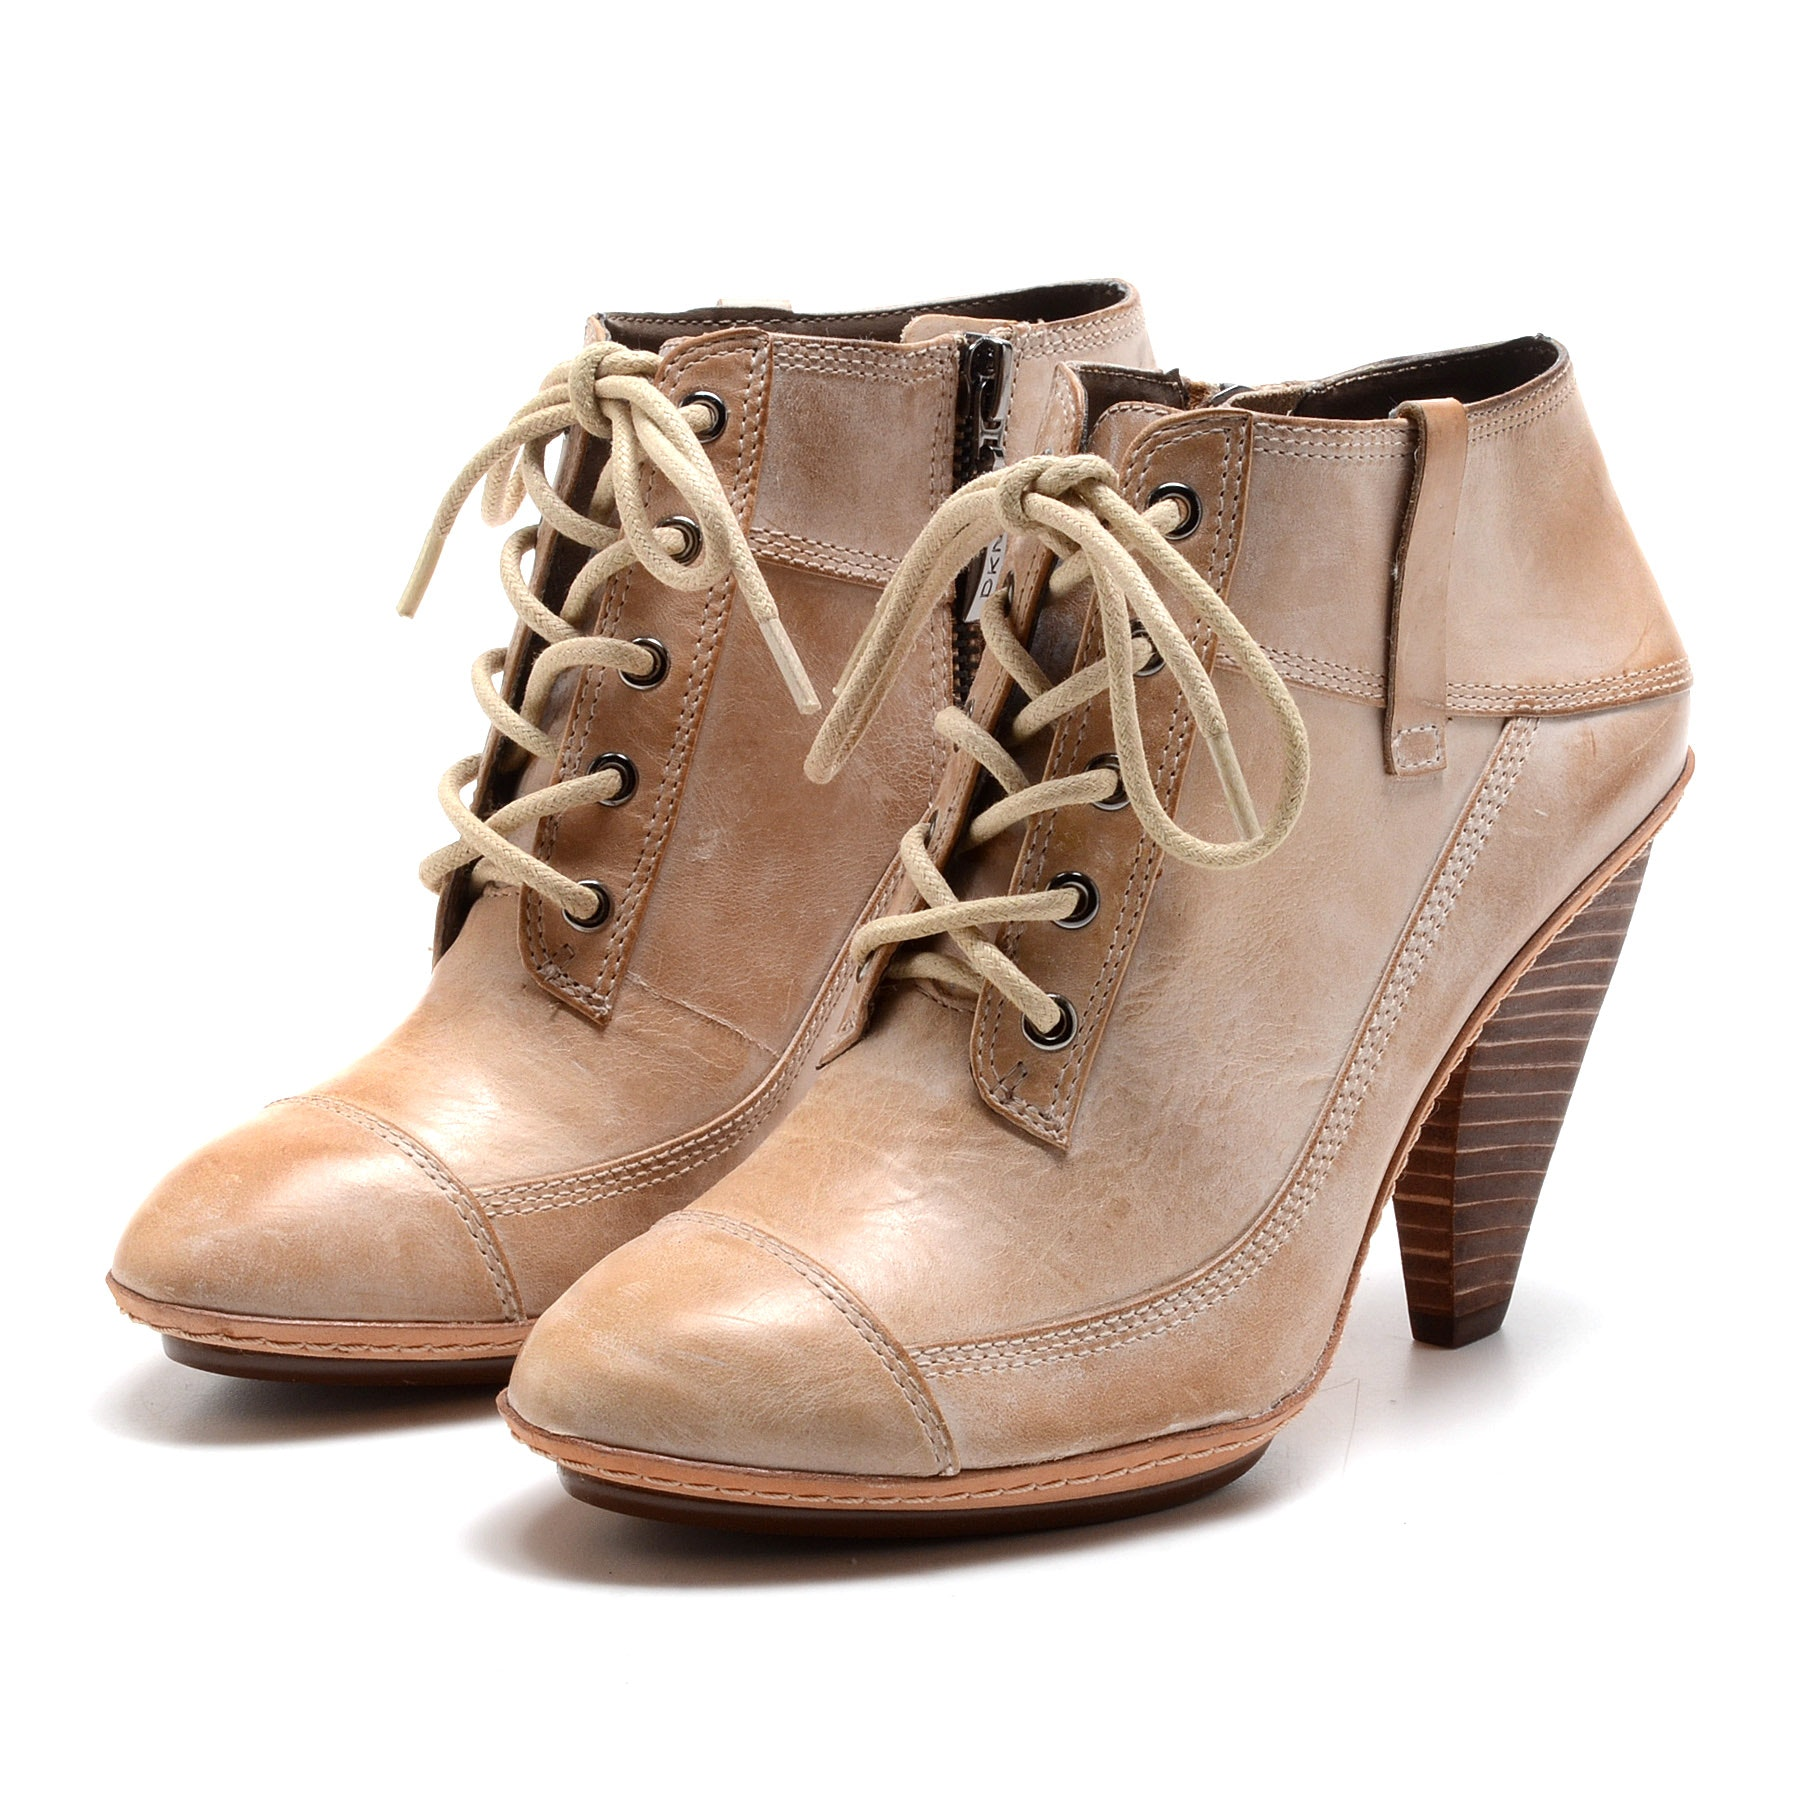 DKNY Camel Leather Lace Up Booties